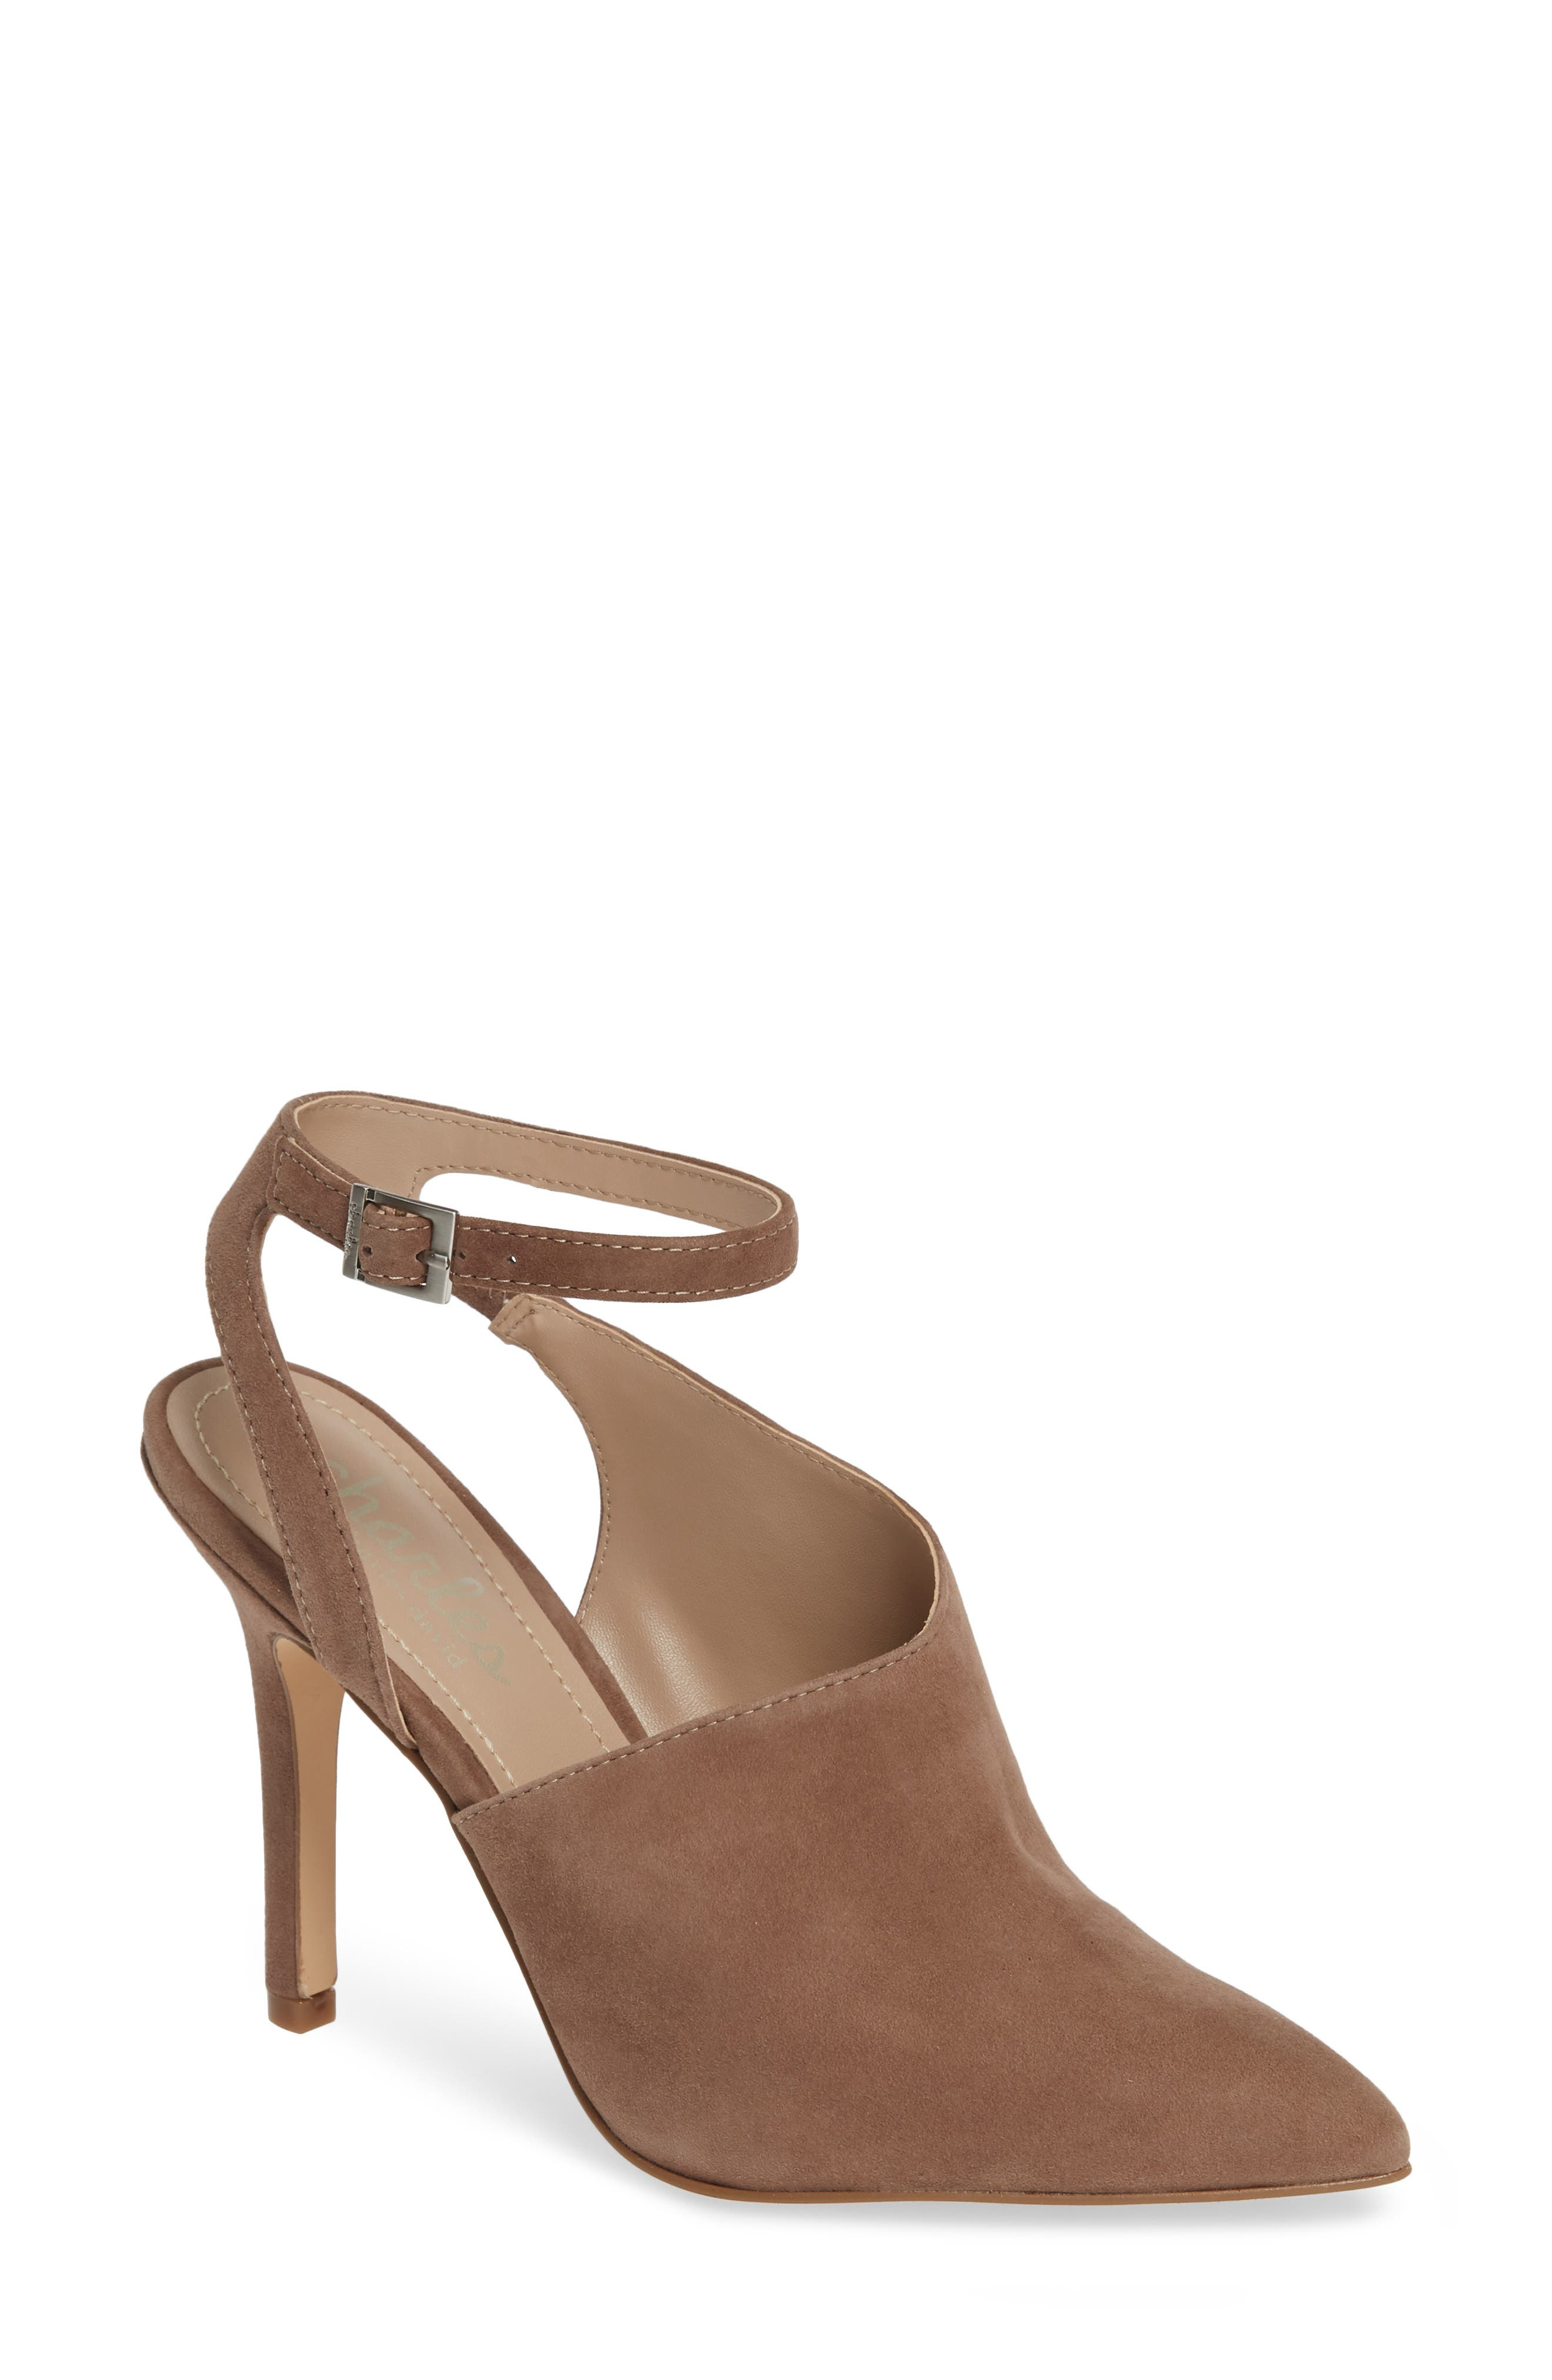 CHARLES BY CHARLES DAVID Mieko Pump, Main, color, TAUPE SUEDE